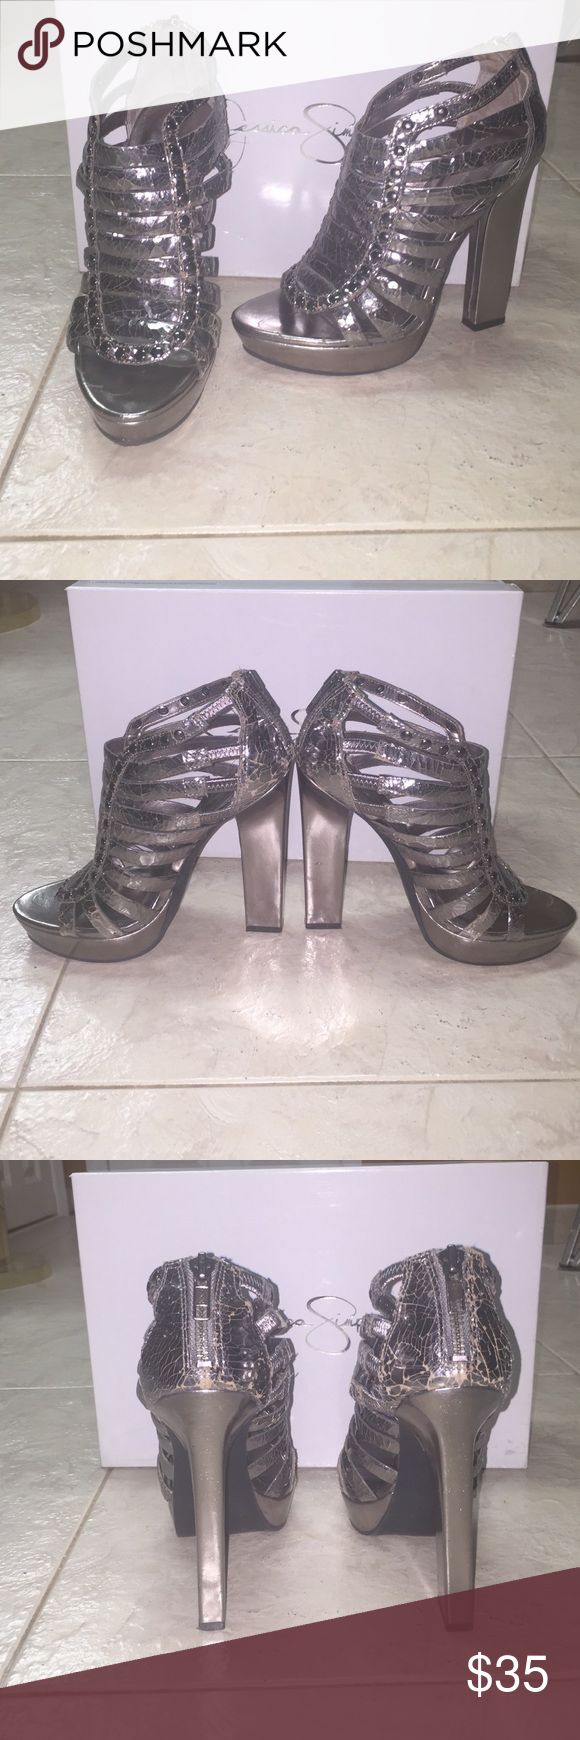 Jessica Simpson Metallic strappy high heels Jessica Simpson Pewter Metallic strappy high chunky heels with zipper back. Cracked leather affect with studs - some areas are more cracked than others. Comes in box Jessica Simpson Shoes Heels